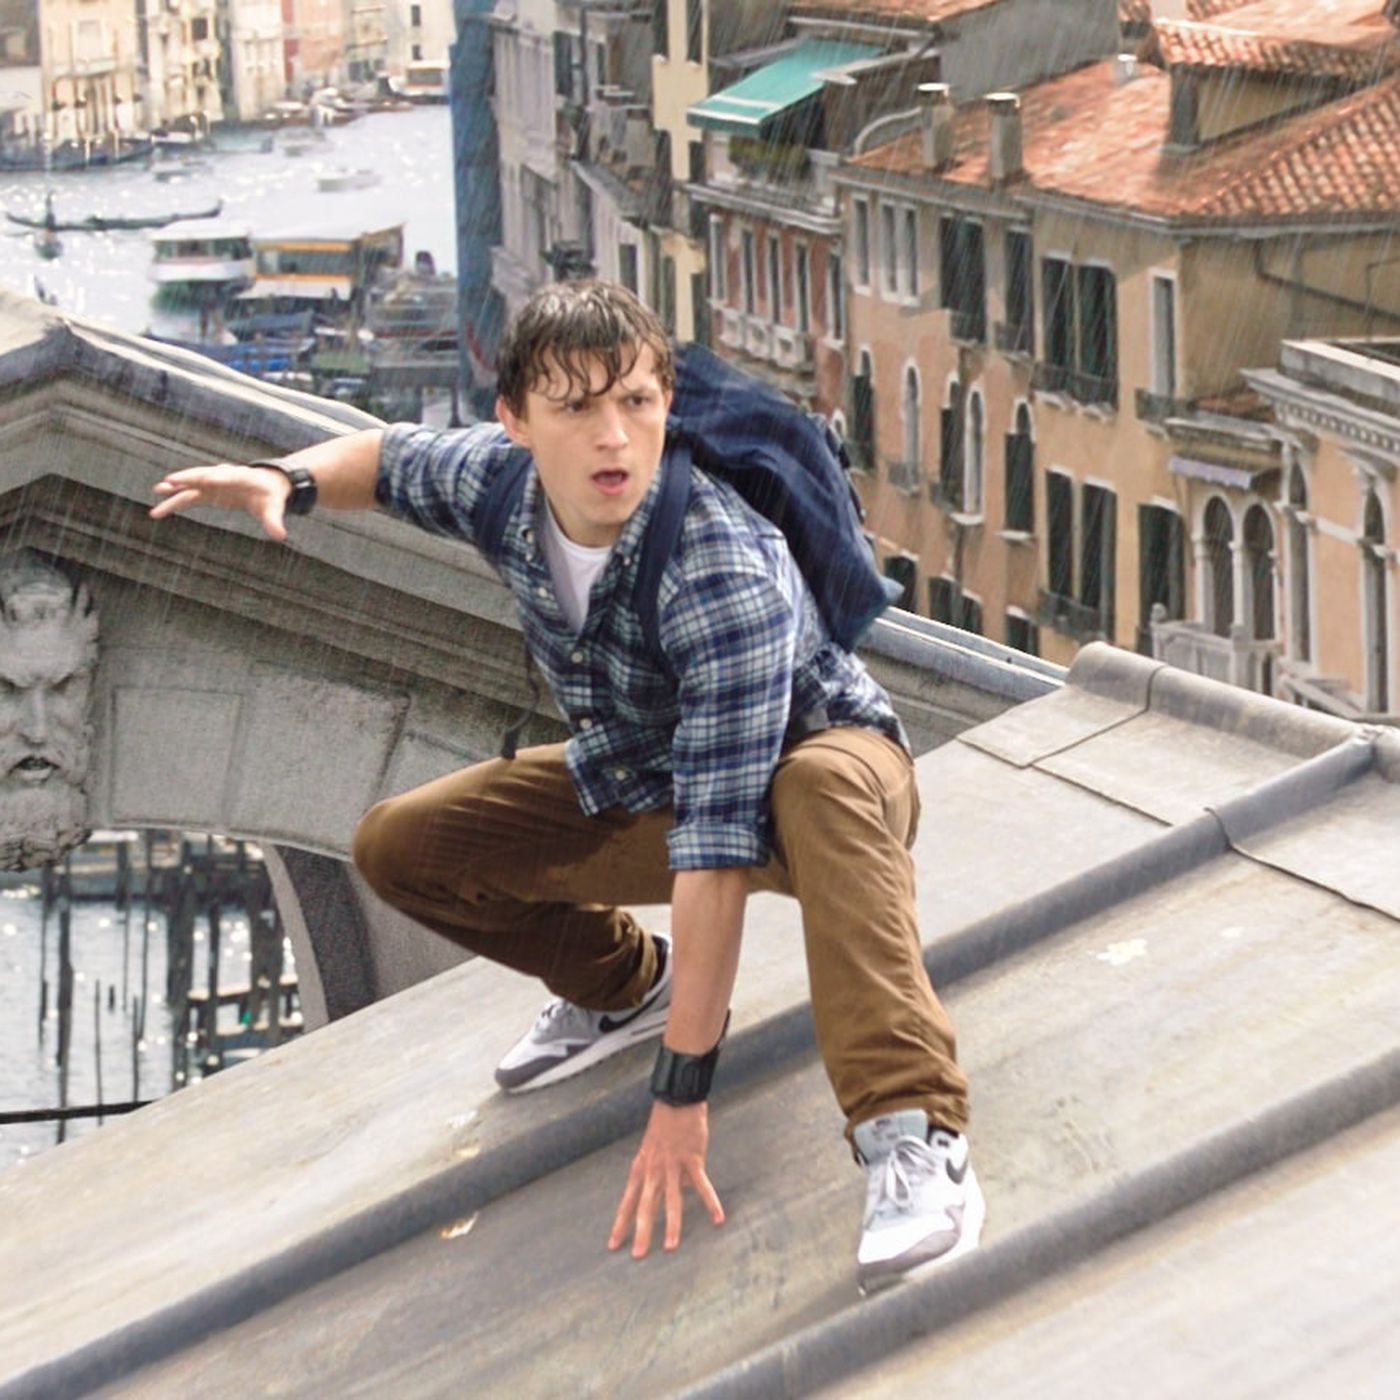 Spider-Man: Far From Home trailer plays way differently